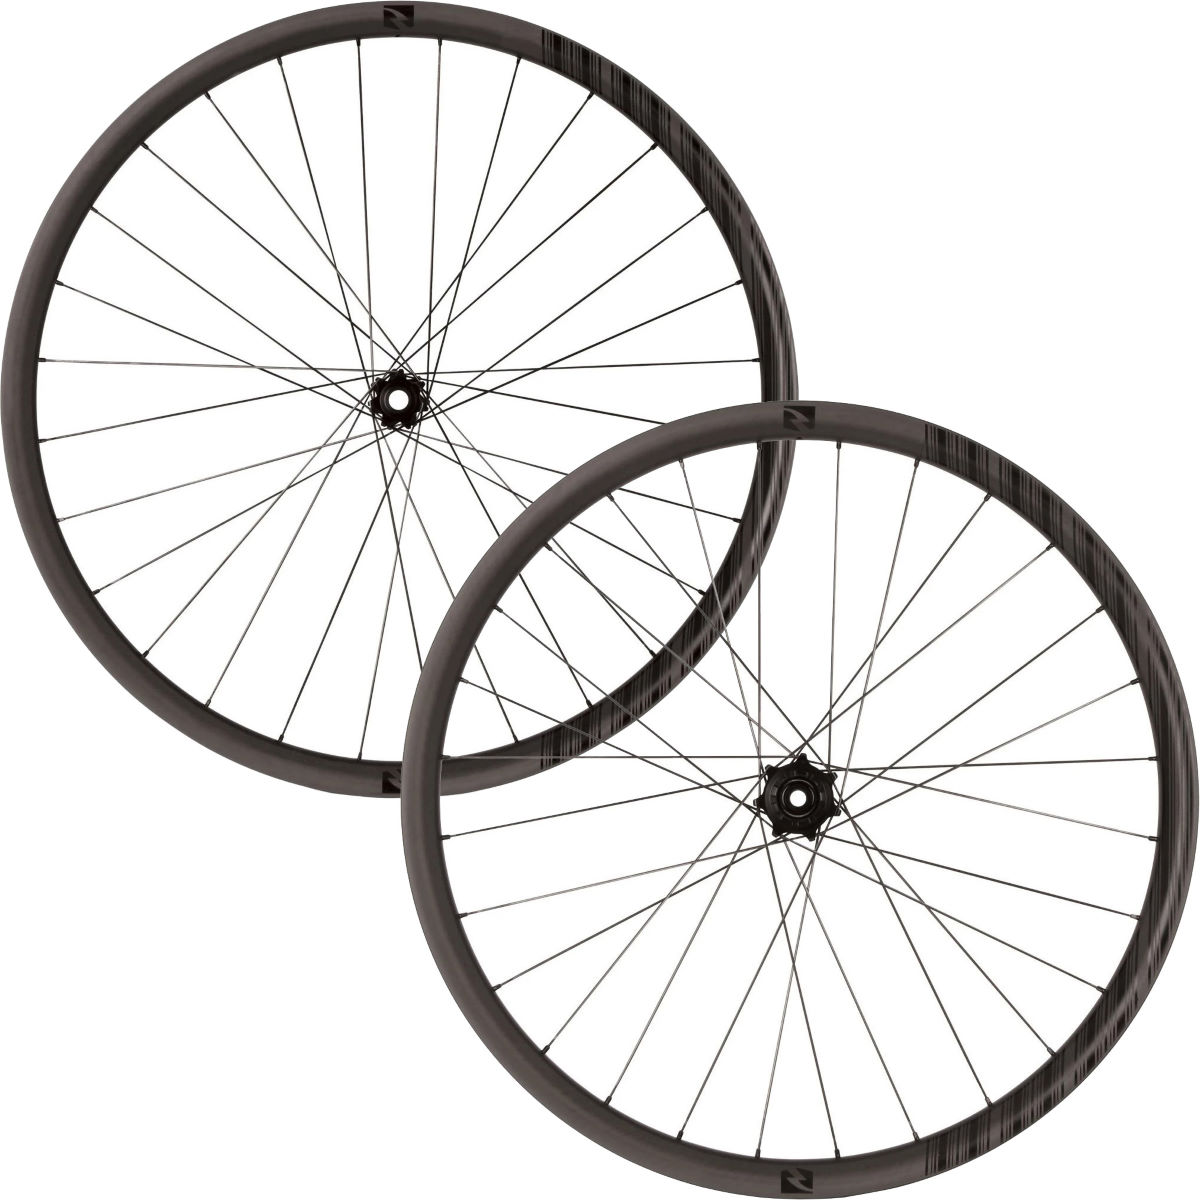 Reynolds Reynolds Black Label Wide Trail 347 Carbon Wheelset   Wheel Sets